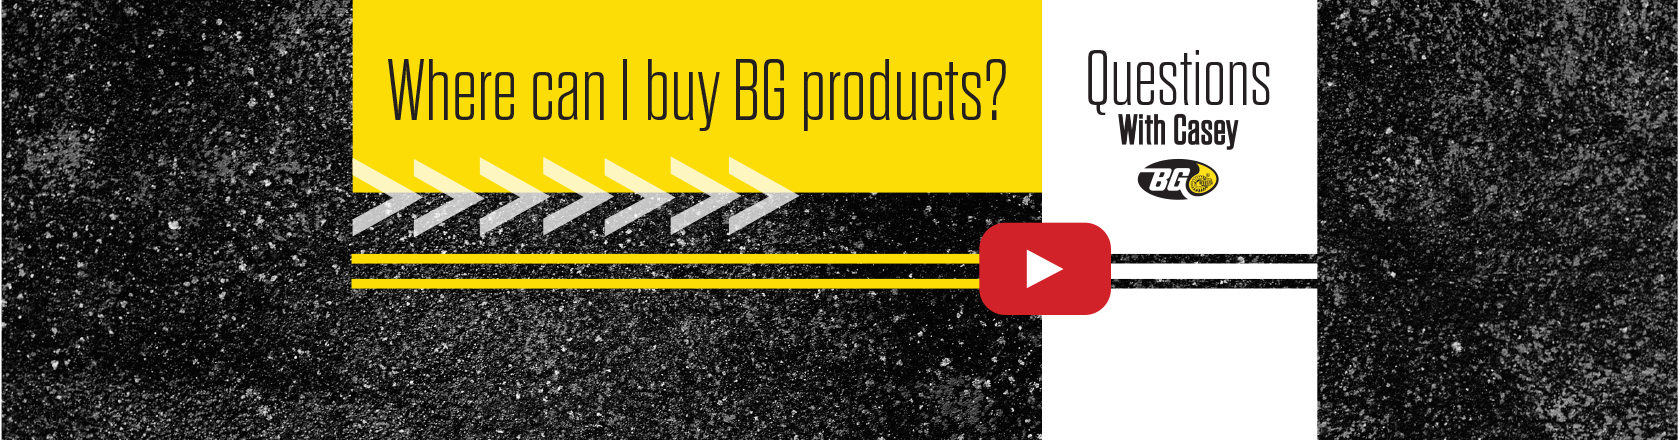 where can I buy bg products?